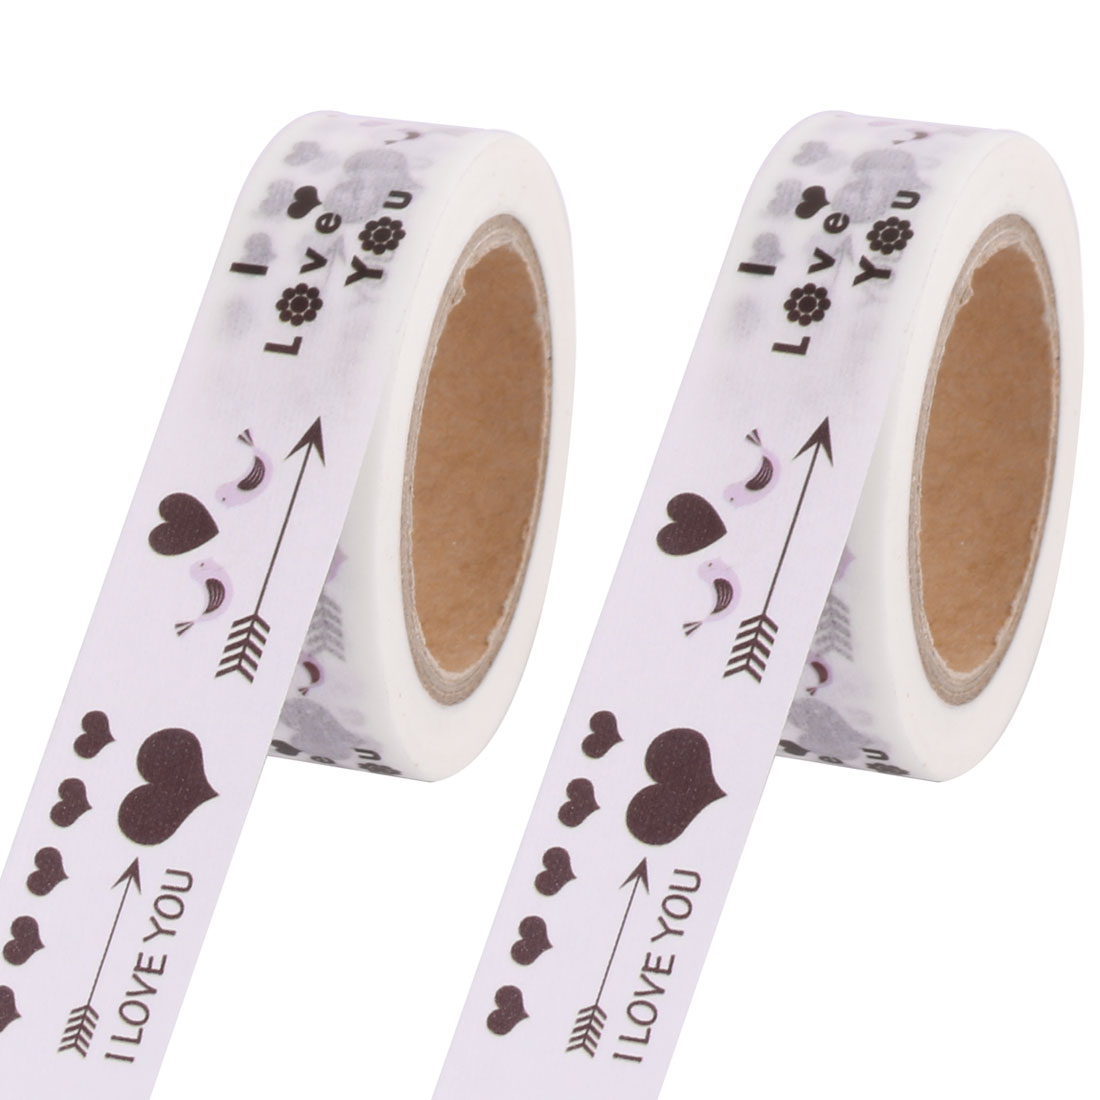 Home Heart Pattern Diary Book Decor Adhesive Washi Paper Tape 15mm x 10M 2 Pcs